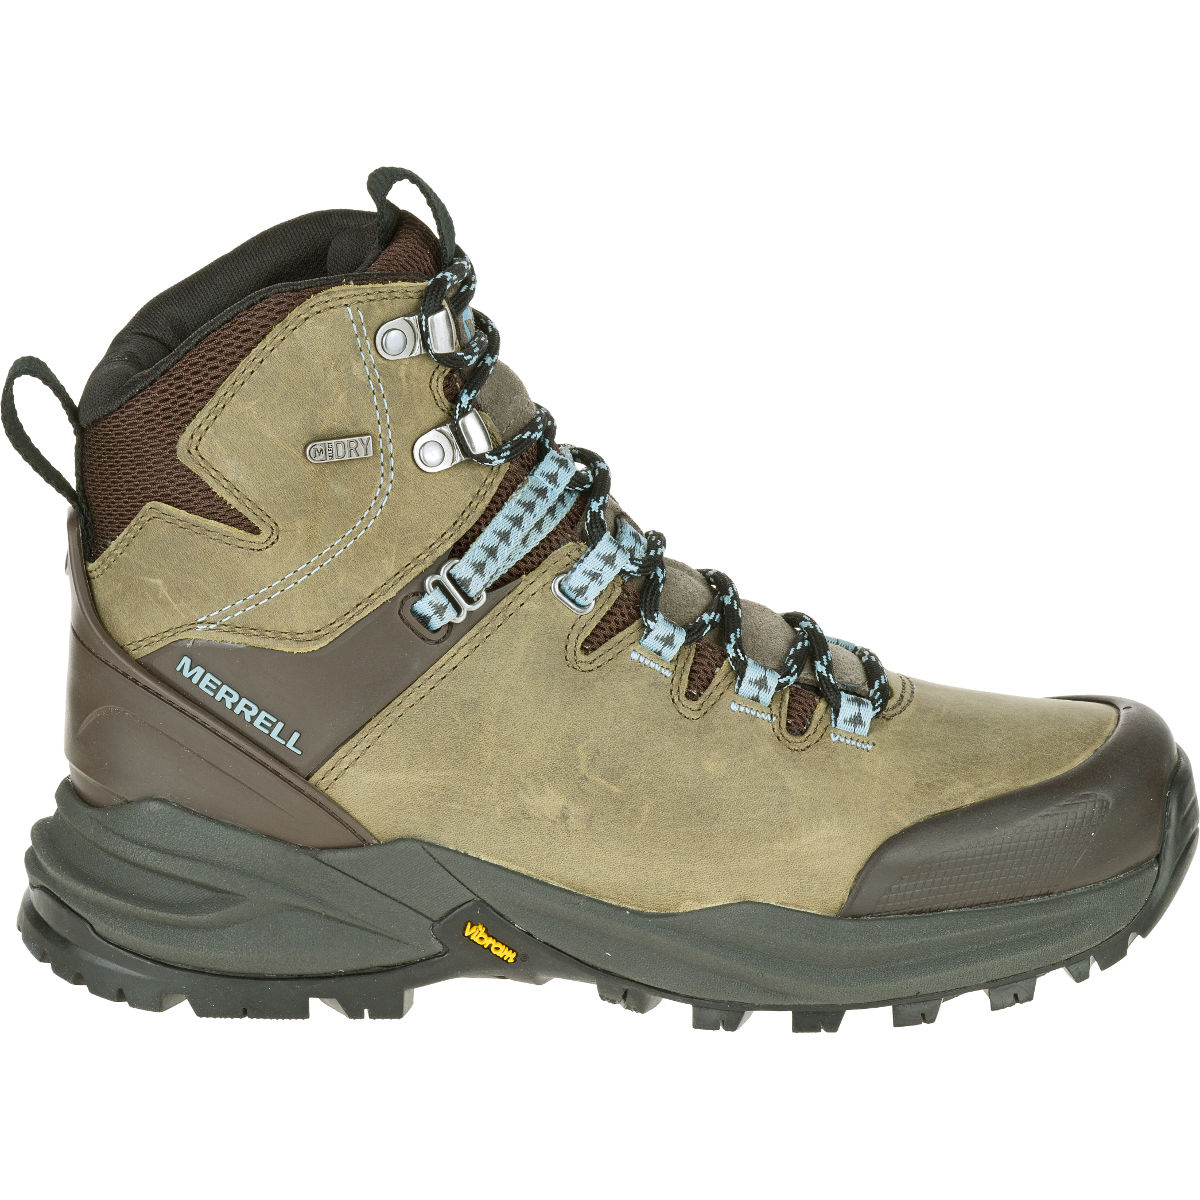 d4a1a253bdc Merrell Women s Phaserbound Waterproof Backpacking Boots